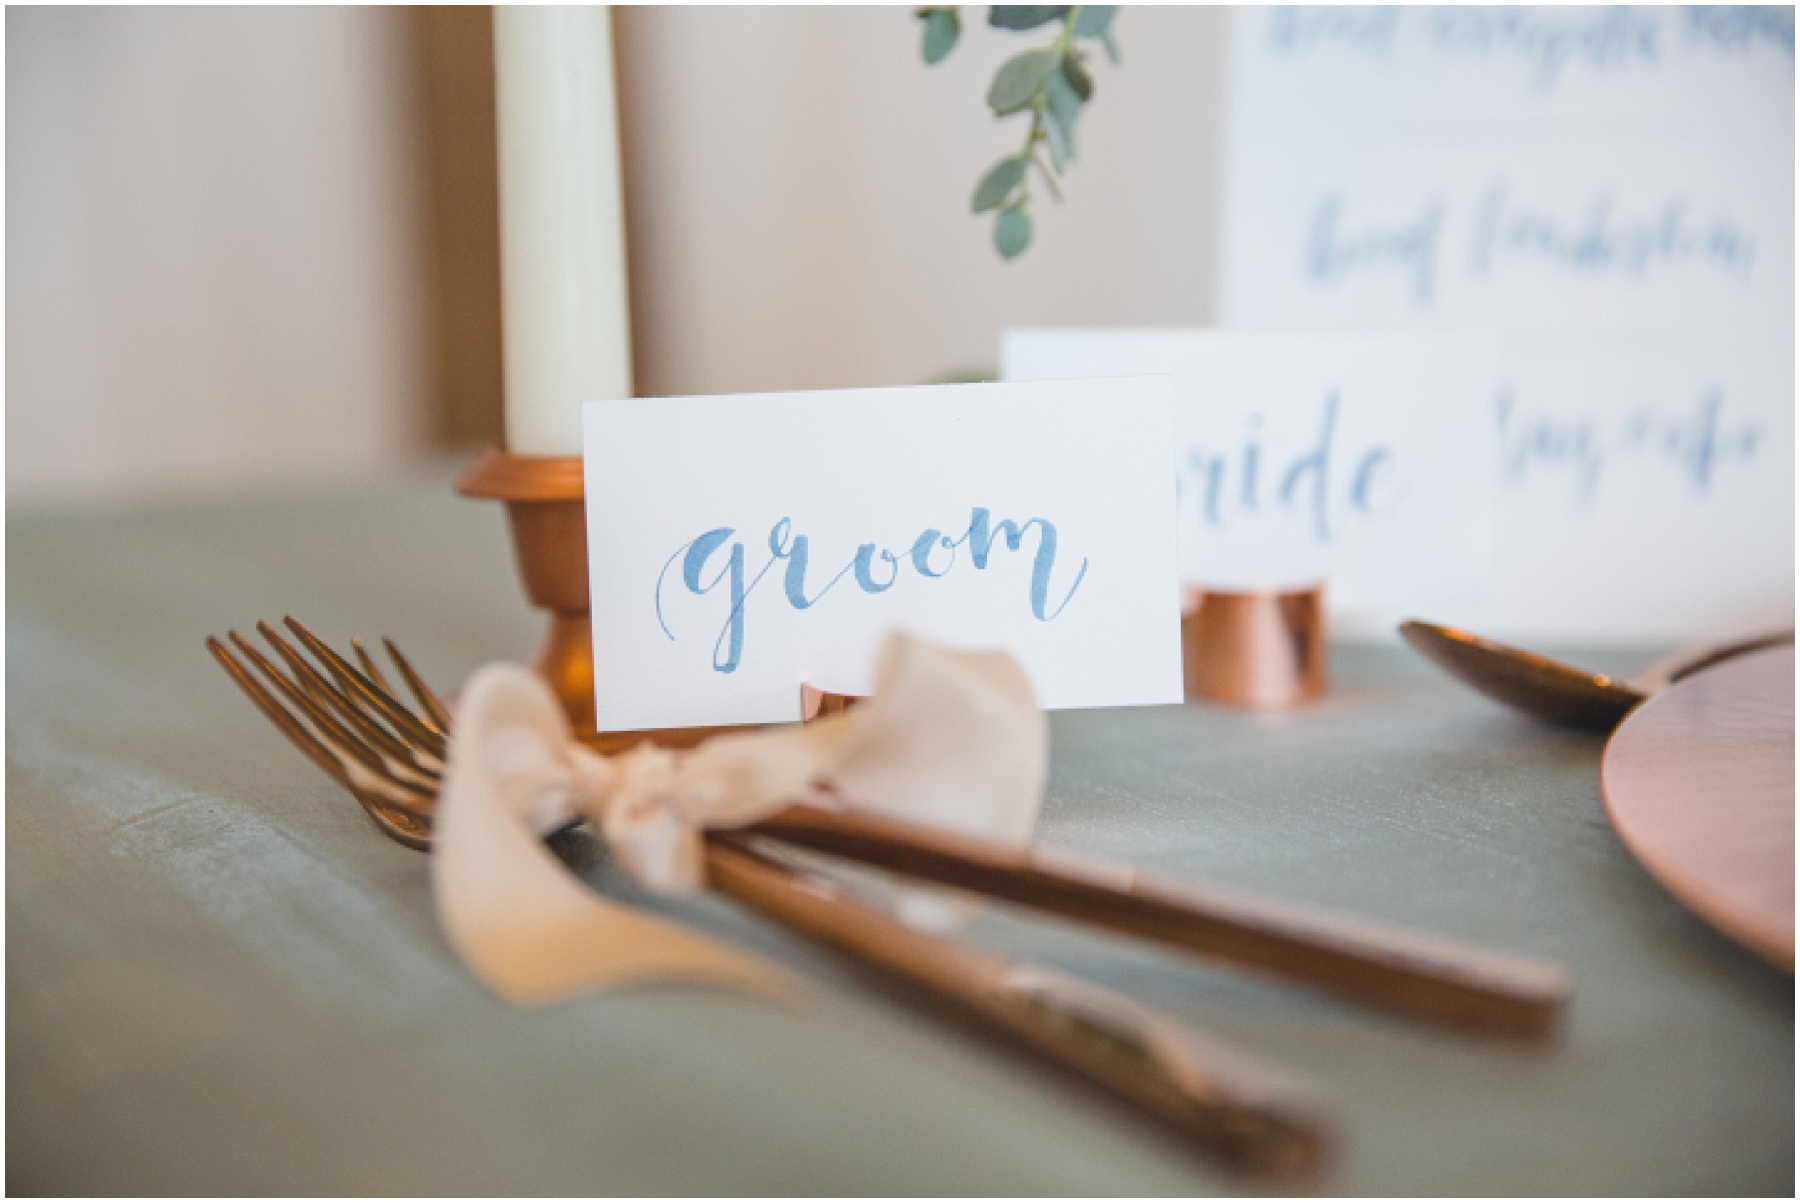 Styled wedding table scape details with blue calligraphy, rose gold cutlery, and white tapers